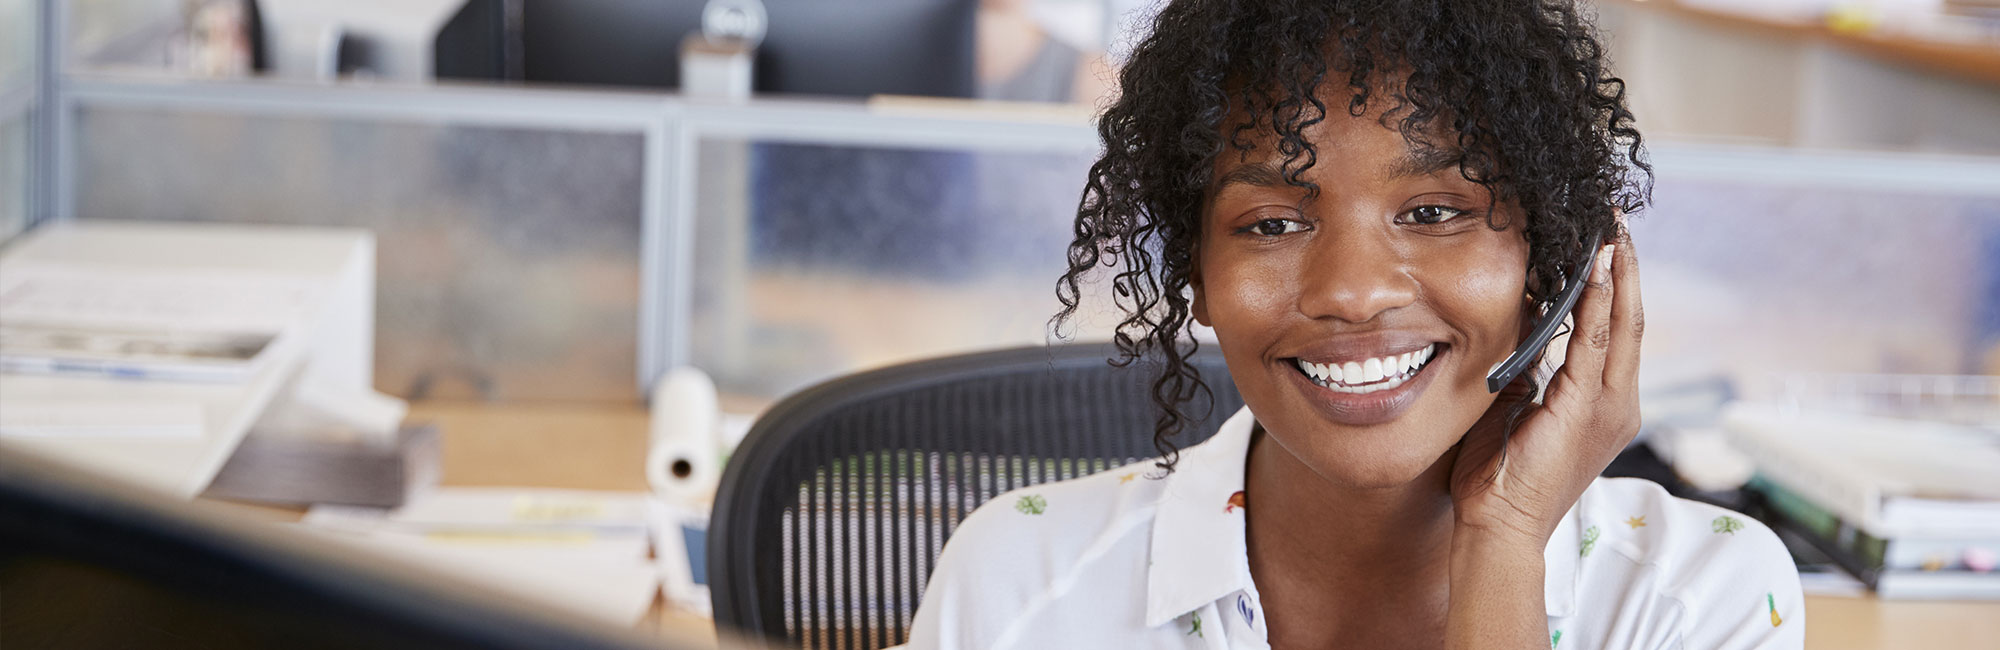 What to Look for When Hiring a Legal Answering Service